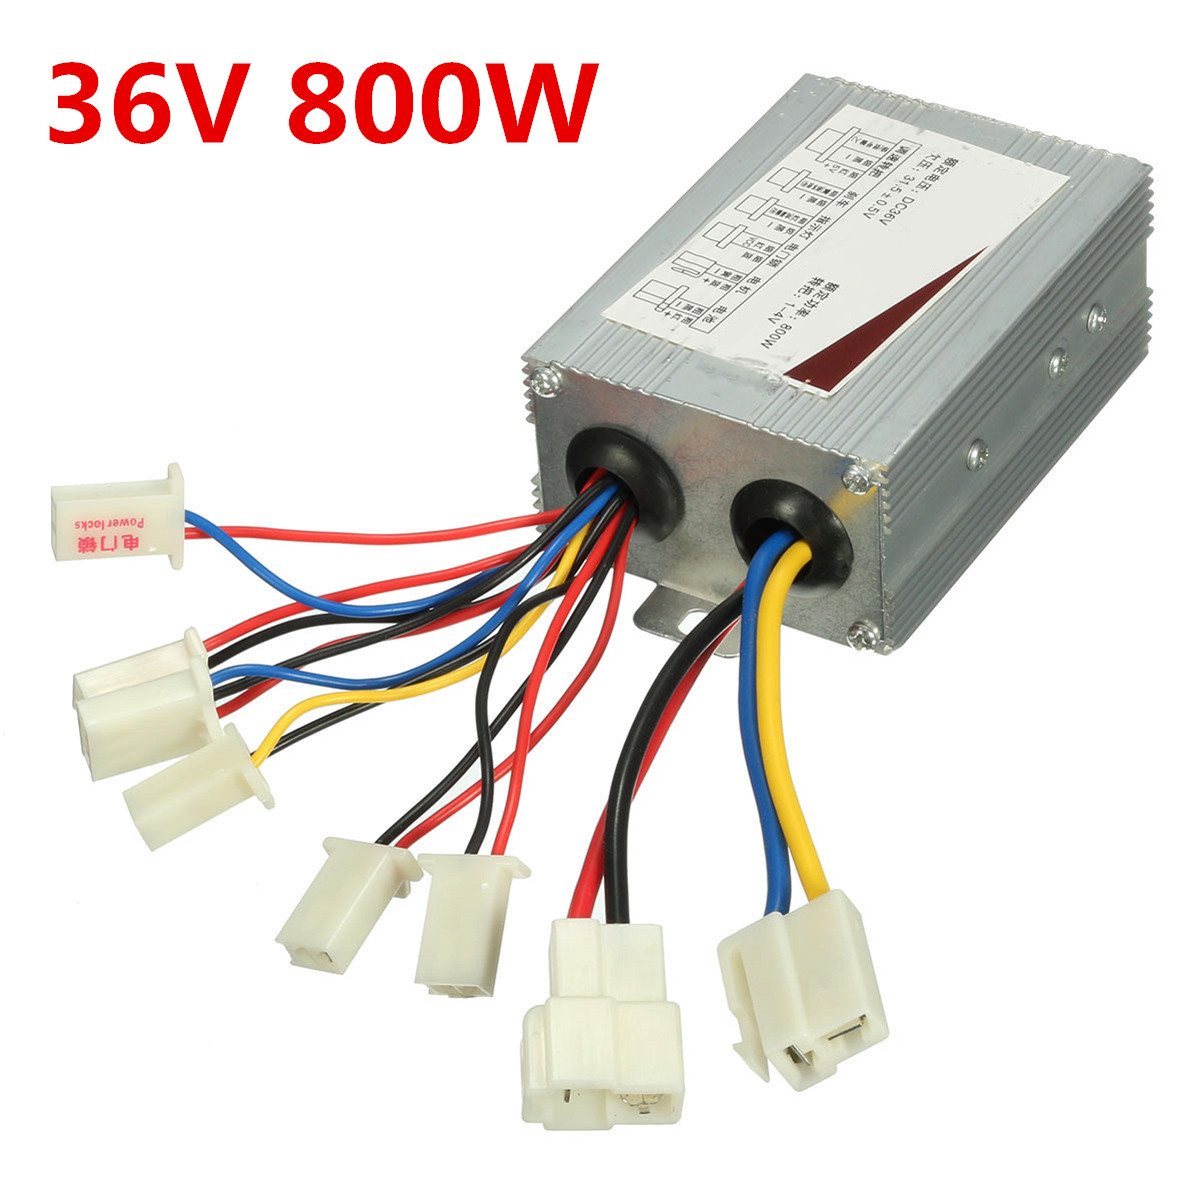 36V 500W 800W Electric Scooter Parts Bicycle E-bike Brush DC Motor Speed Controller Accessories Parts